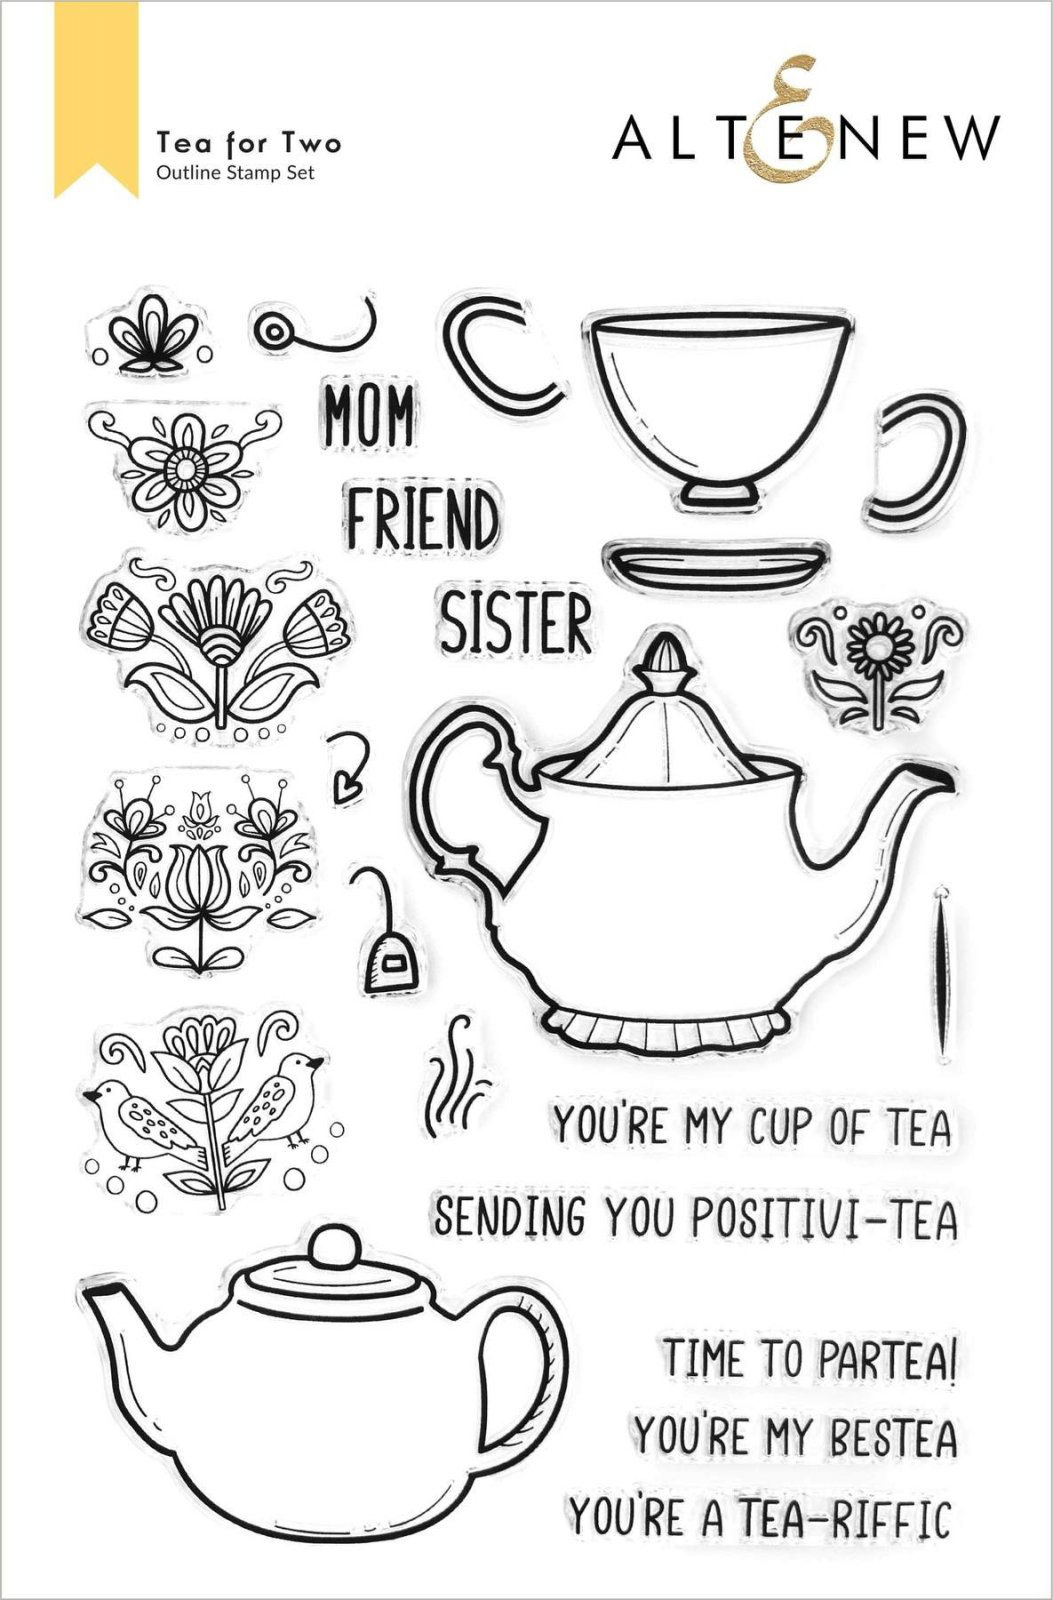 Altenew - Tea for Two Stamp Set